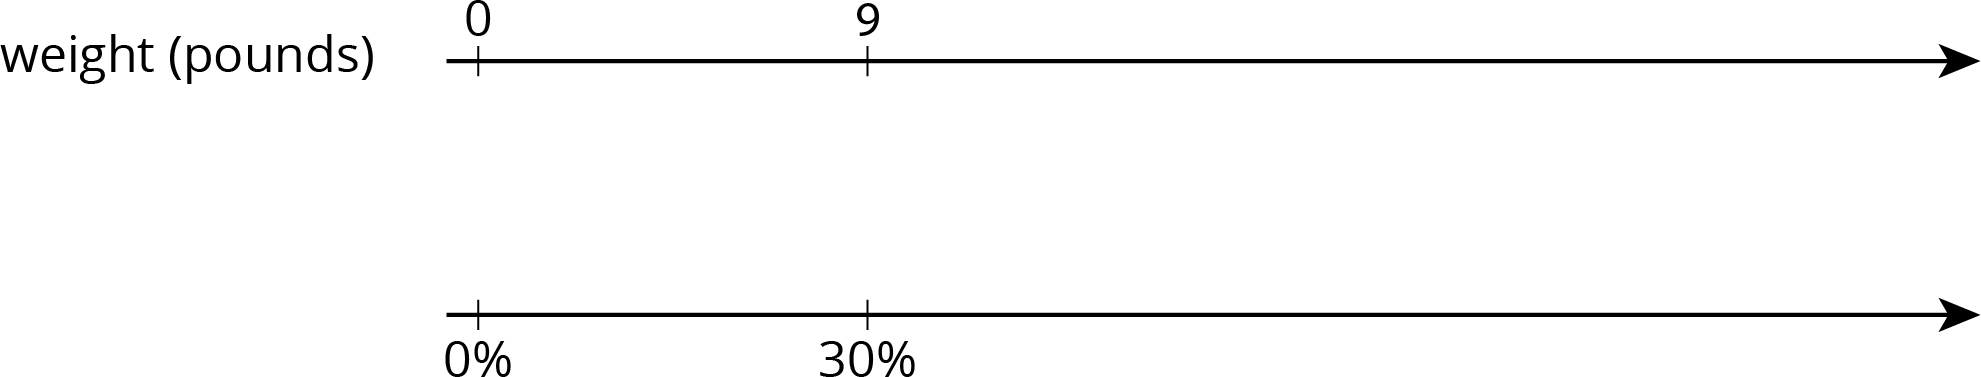 "A double number line for ""weight in pounds"" with 2 tick marks. The top number line has the number 0 on the first tick mark and 9 on the second. The bottom number line has 0 percent on the first tick mark and 30 percent on the second."